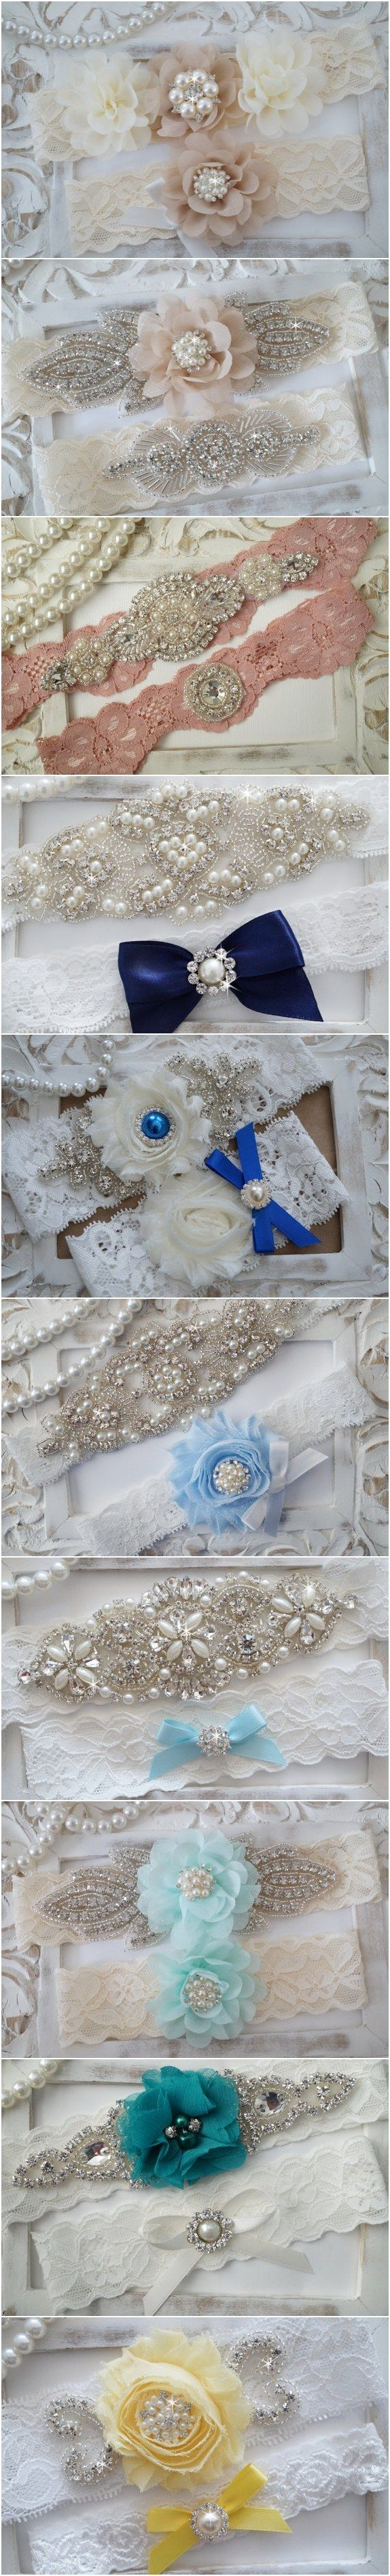 65 Romantic Wedding Garters From Etsy Youll Love